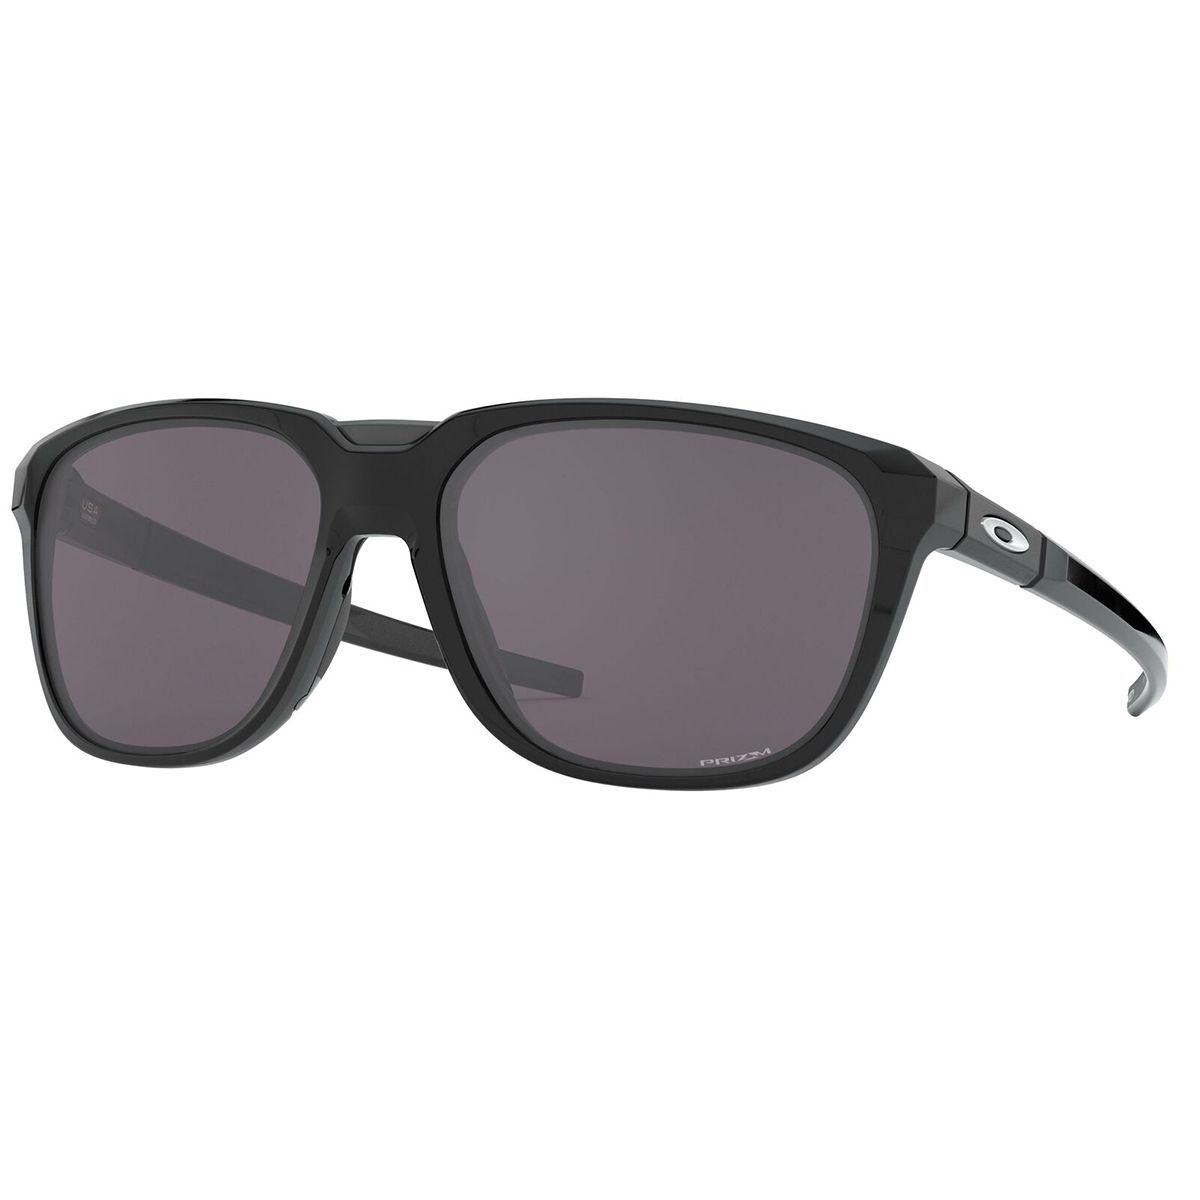 ANORAK Sunglasses